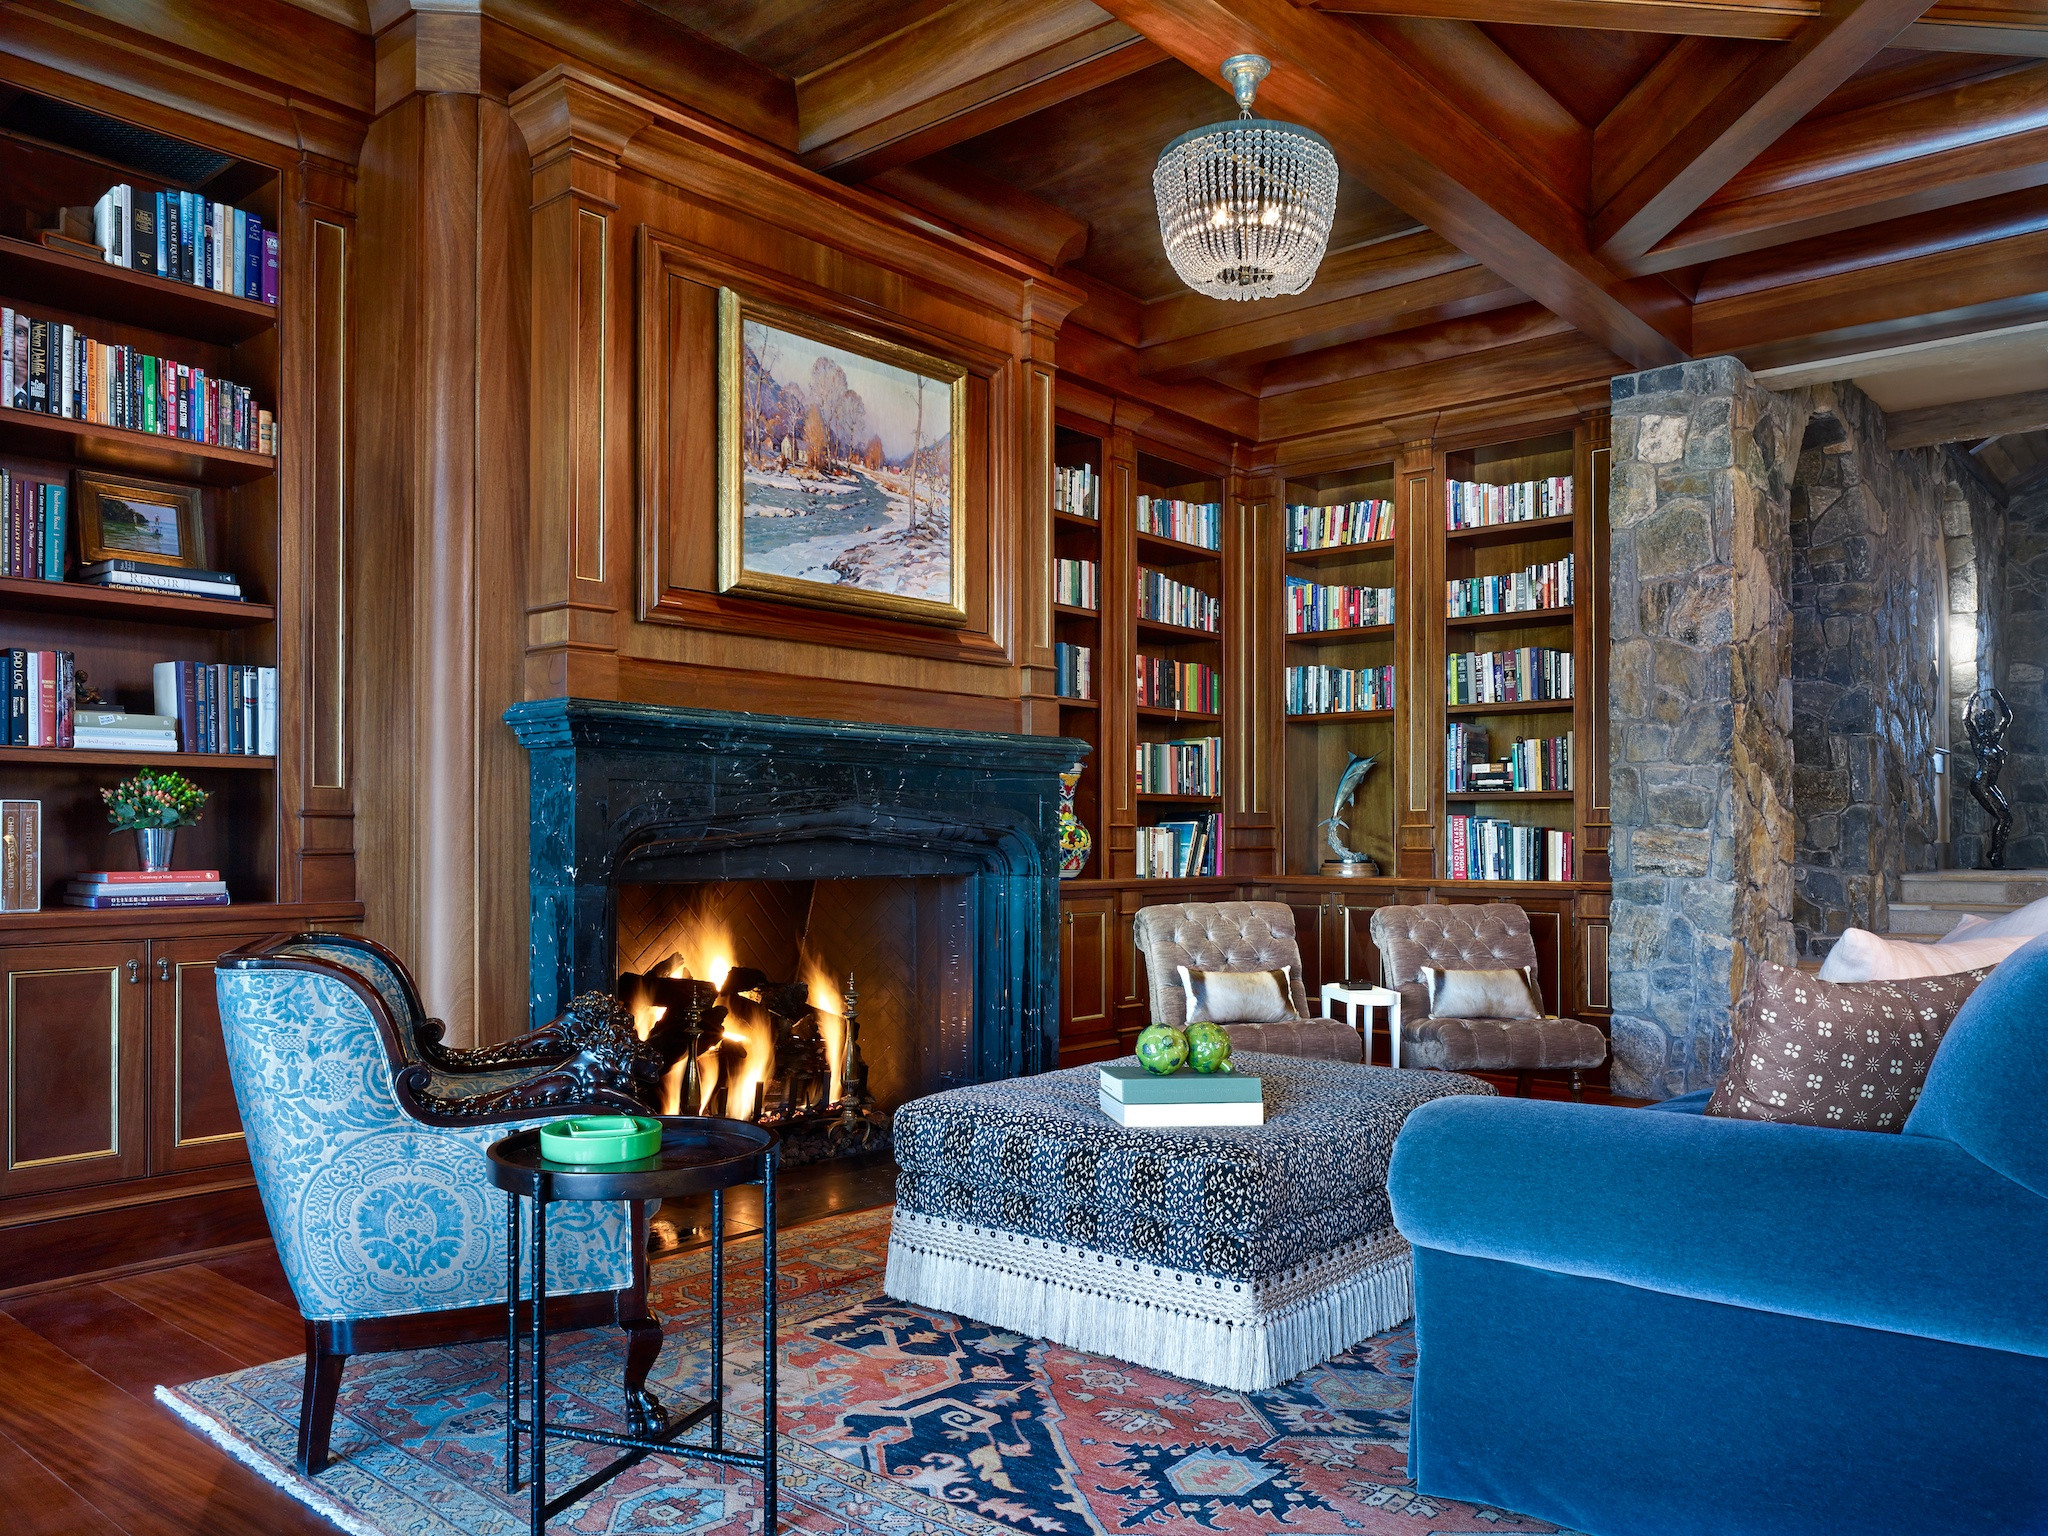 75 Beautiful Living Room Pictures Ideas January 2021 Houzz